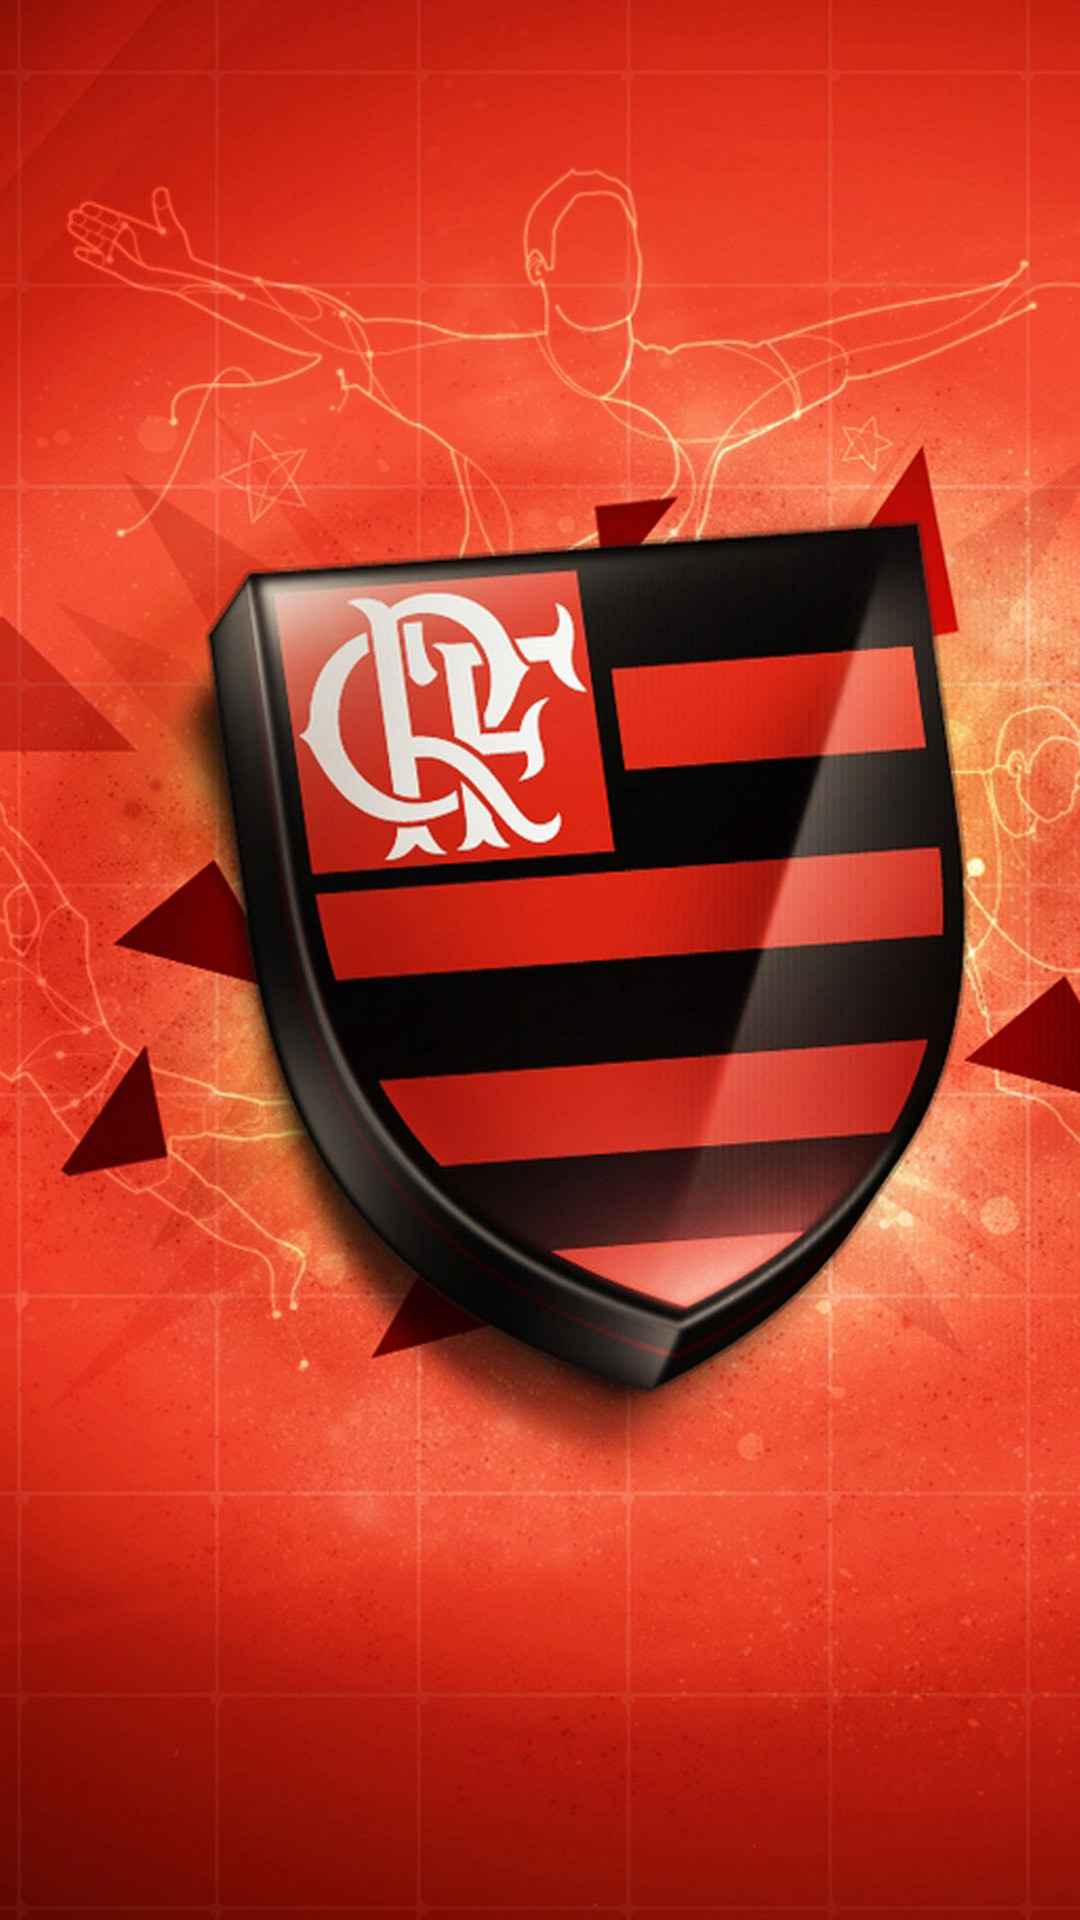 Flamengo Wallpapers 68 images 1080x1920